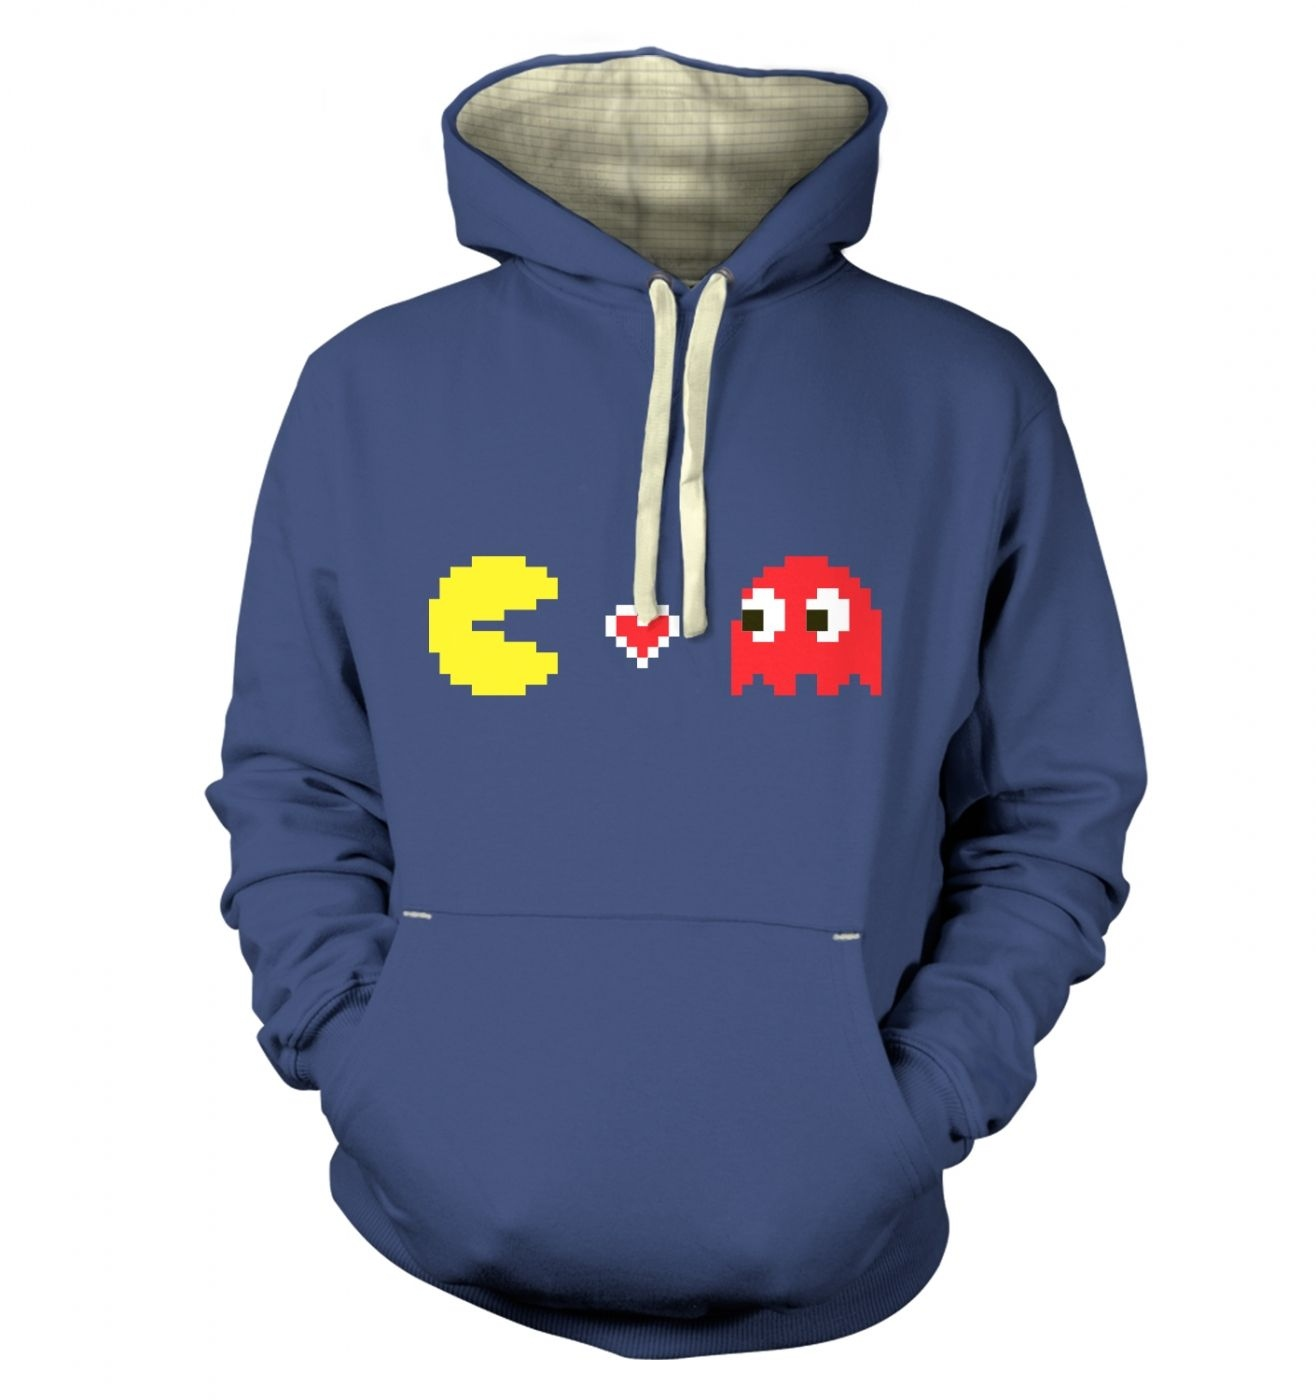 Squid Love Cheese premium hoodie